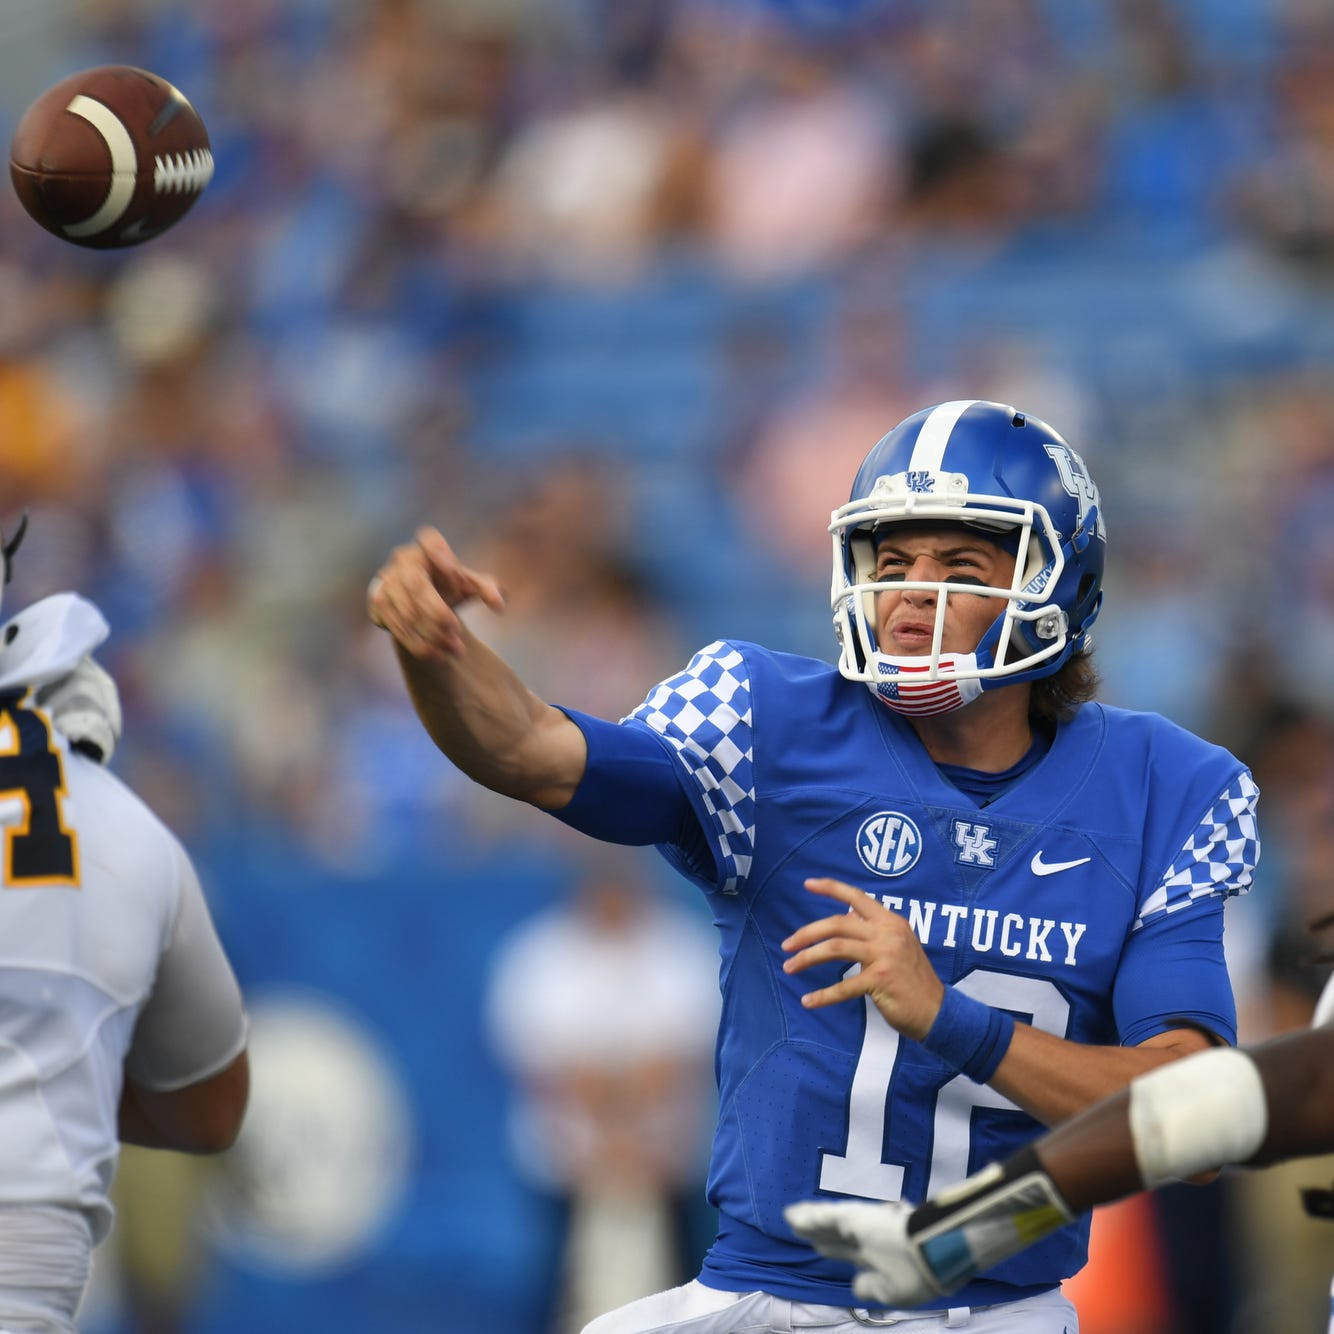 Kentucky football backup QB Gunnar Hoak transferring to Ohio State